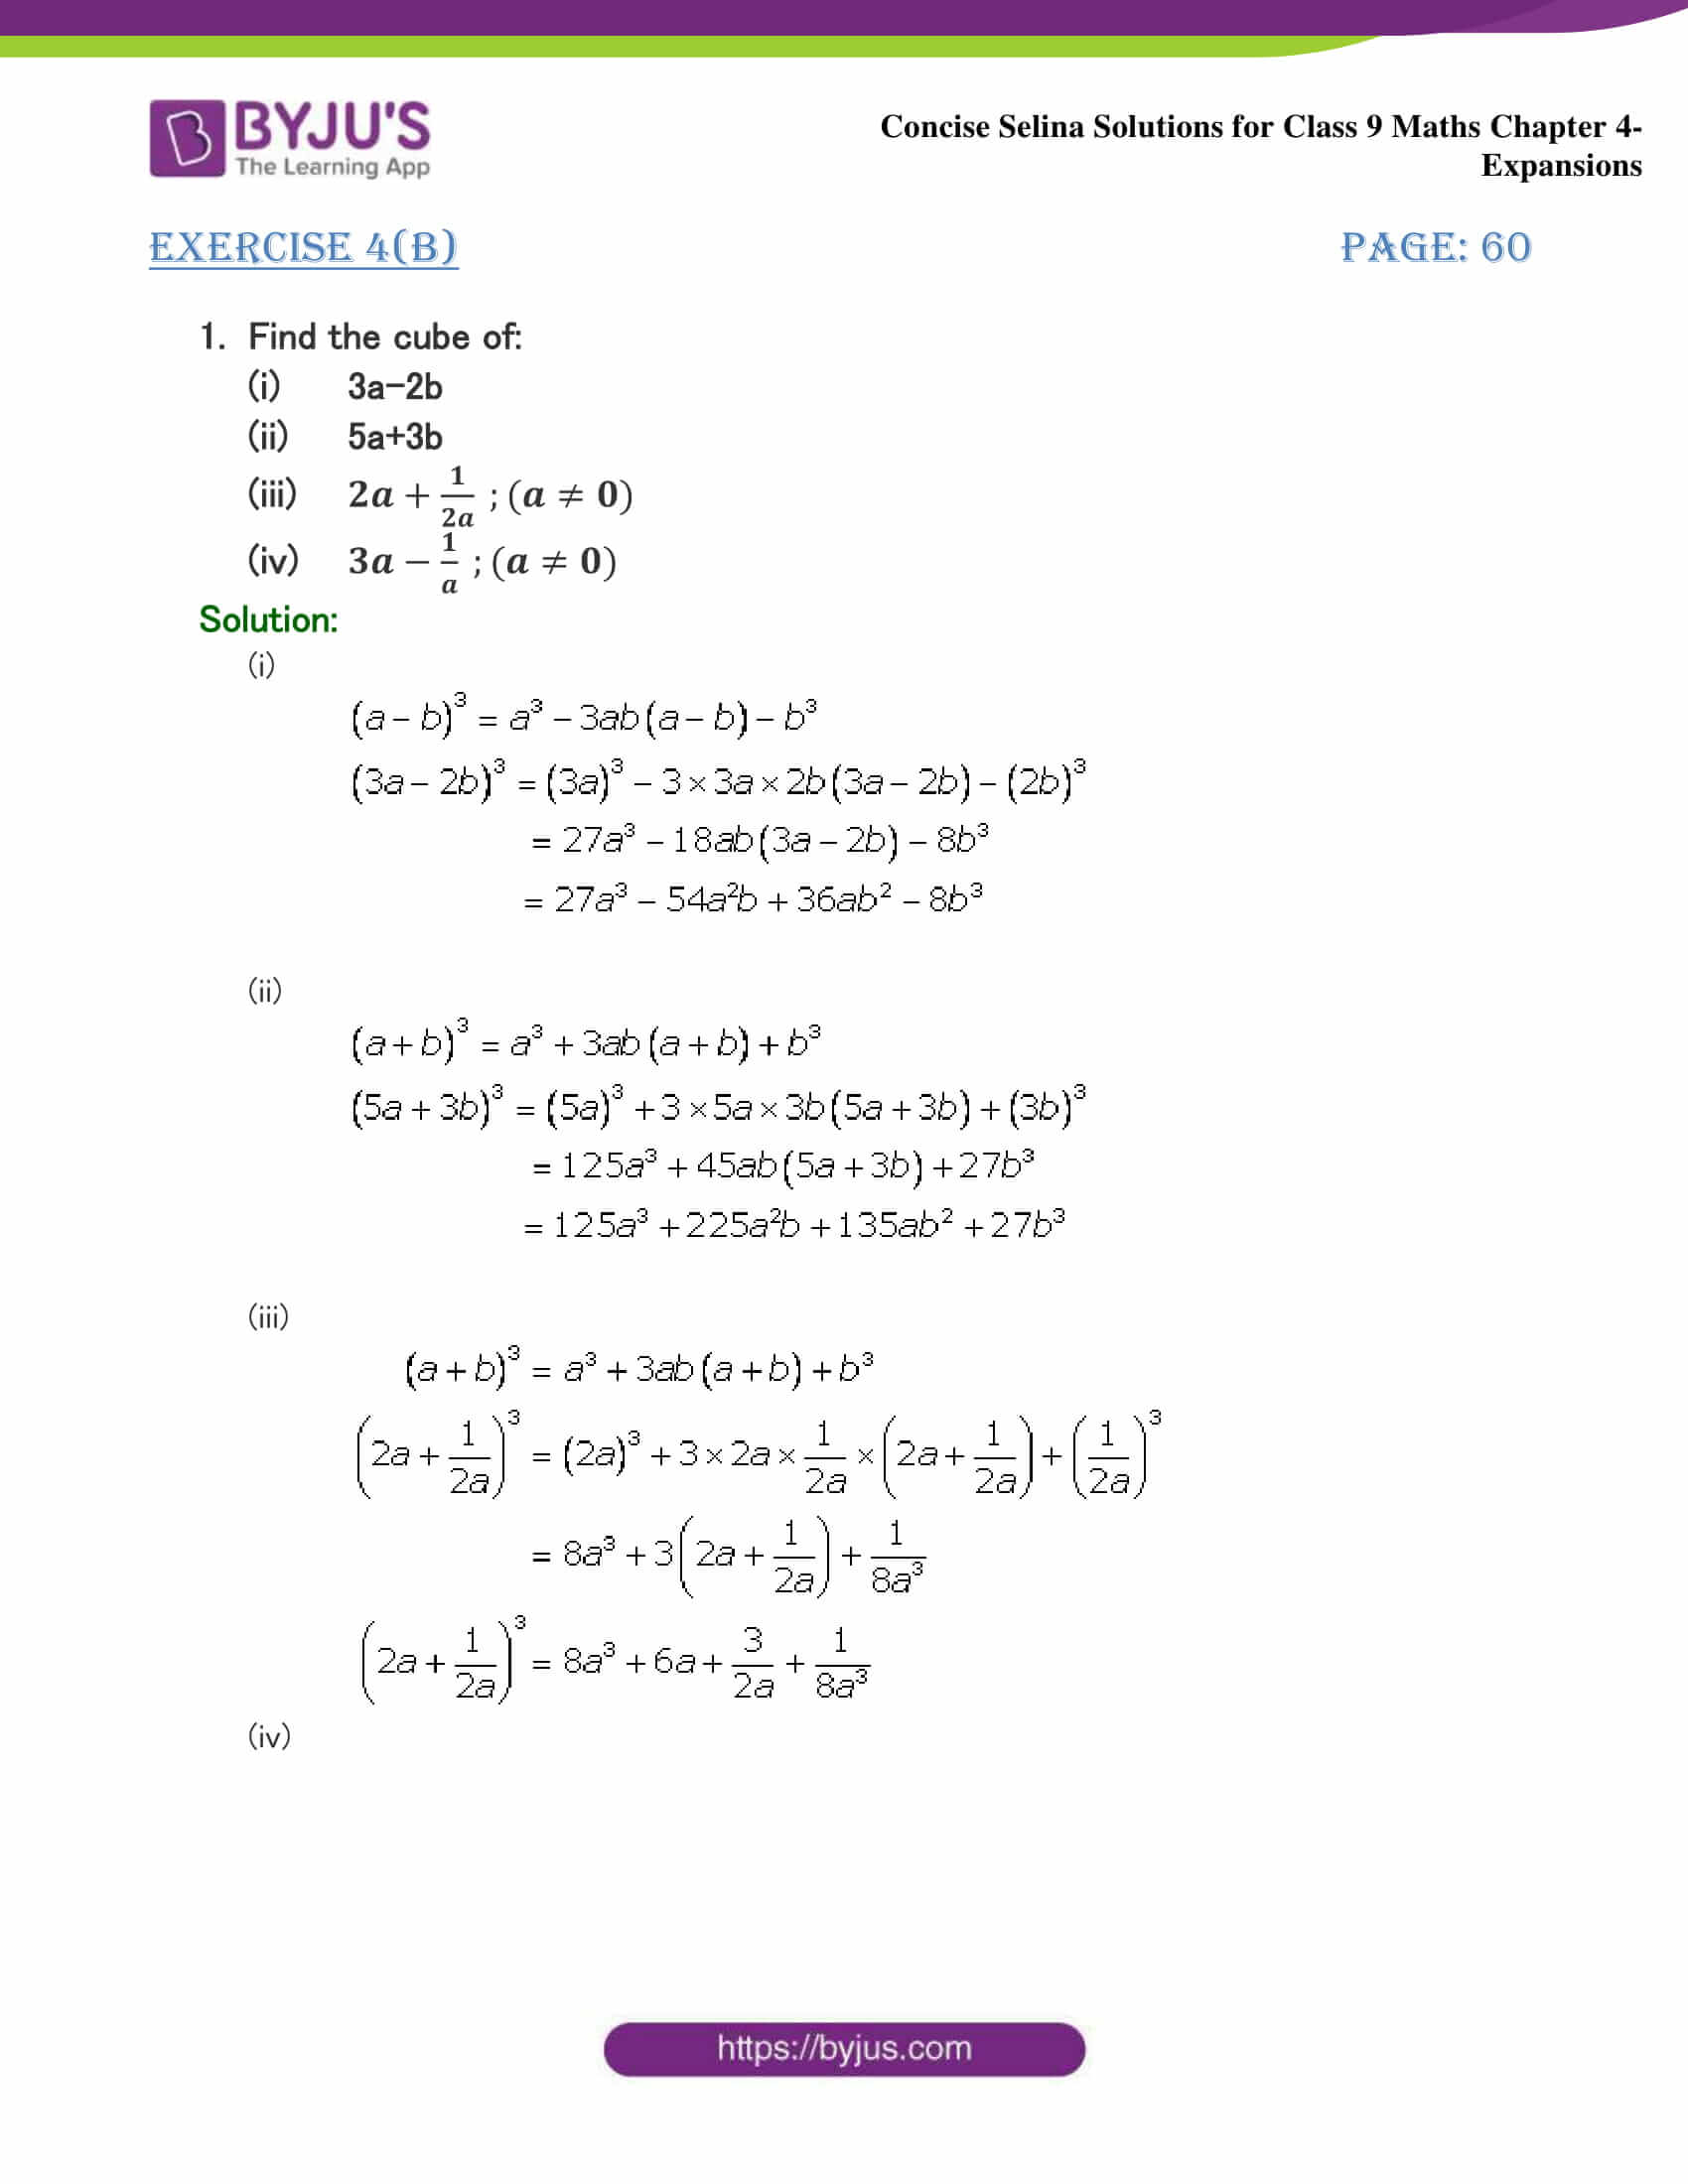 Selina Solutions Class 9 Maths Chapter 4 Expansions part 16